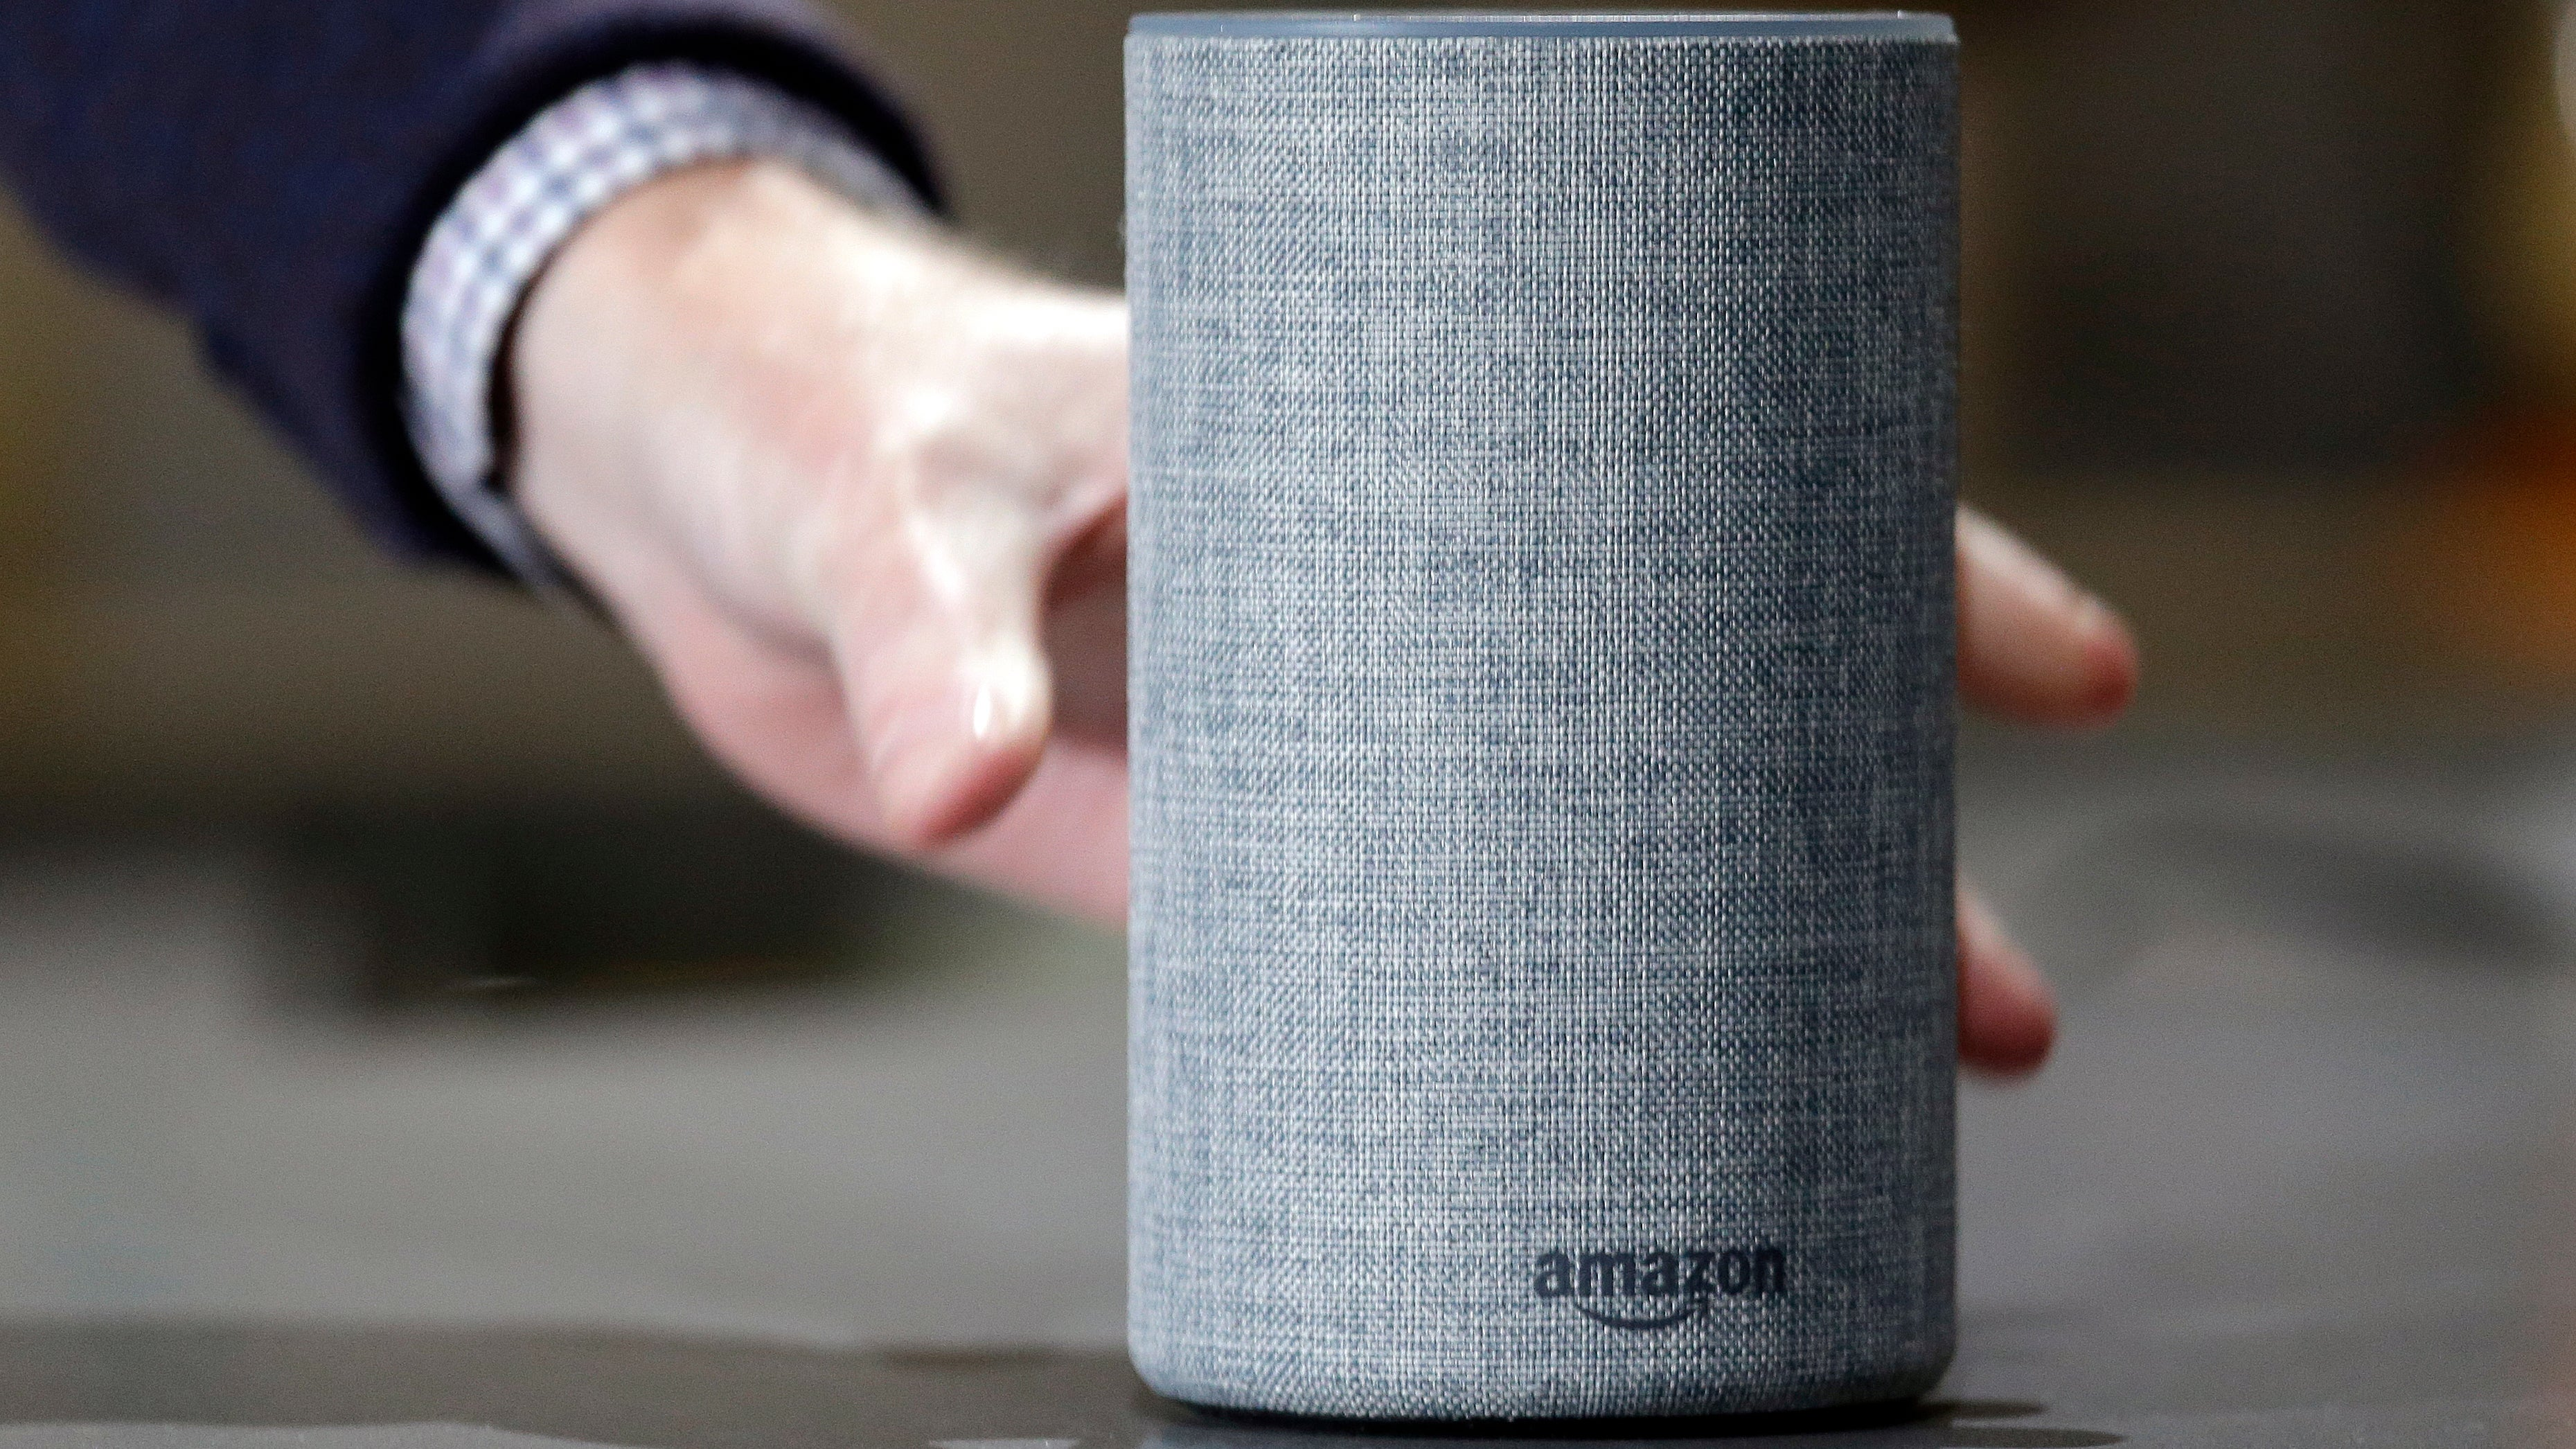 Amazon's Next Big Thing Could Be Serving You Ads On The Go